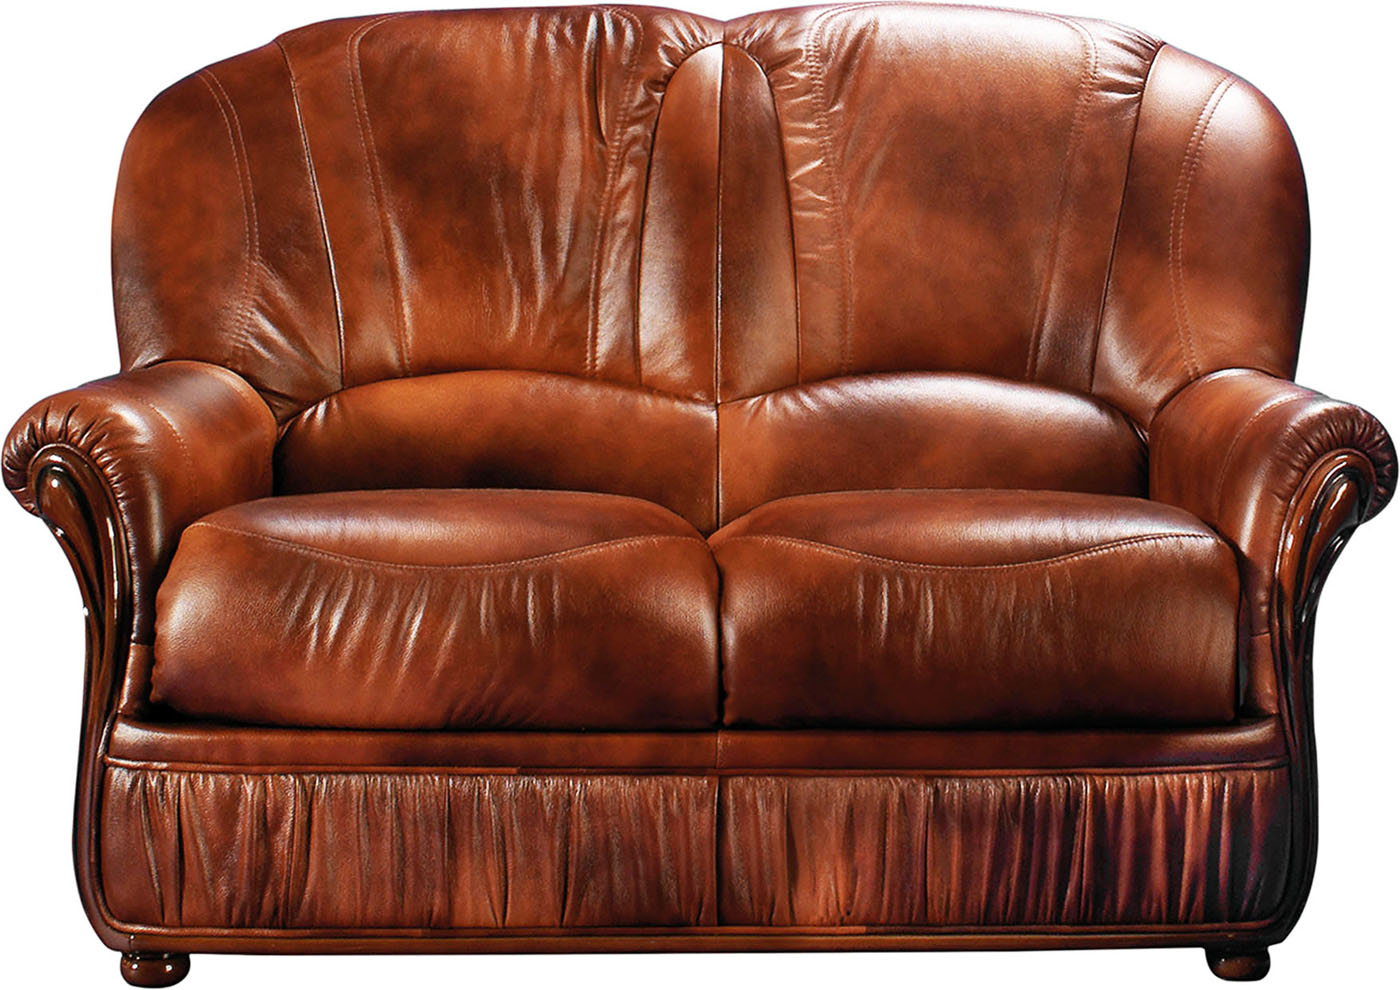 Mina Caramel Brown Leather Italian Loveseat With Wood Accents